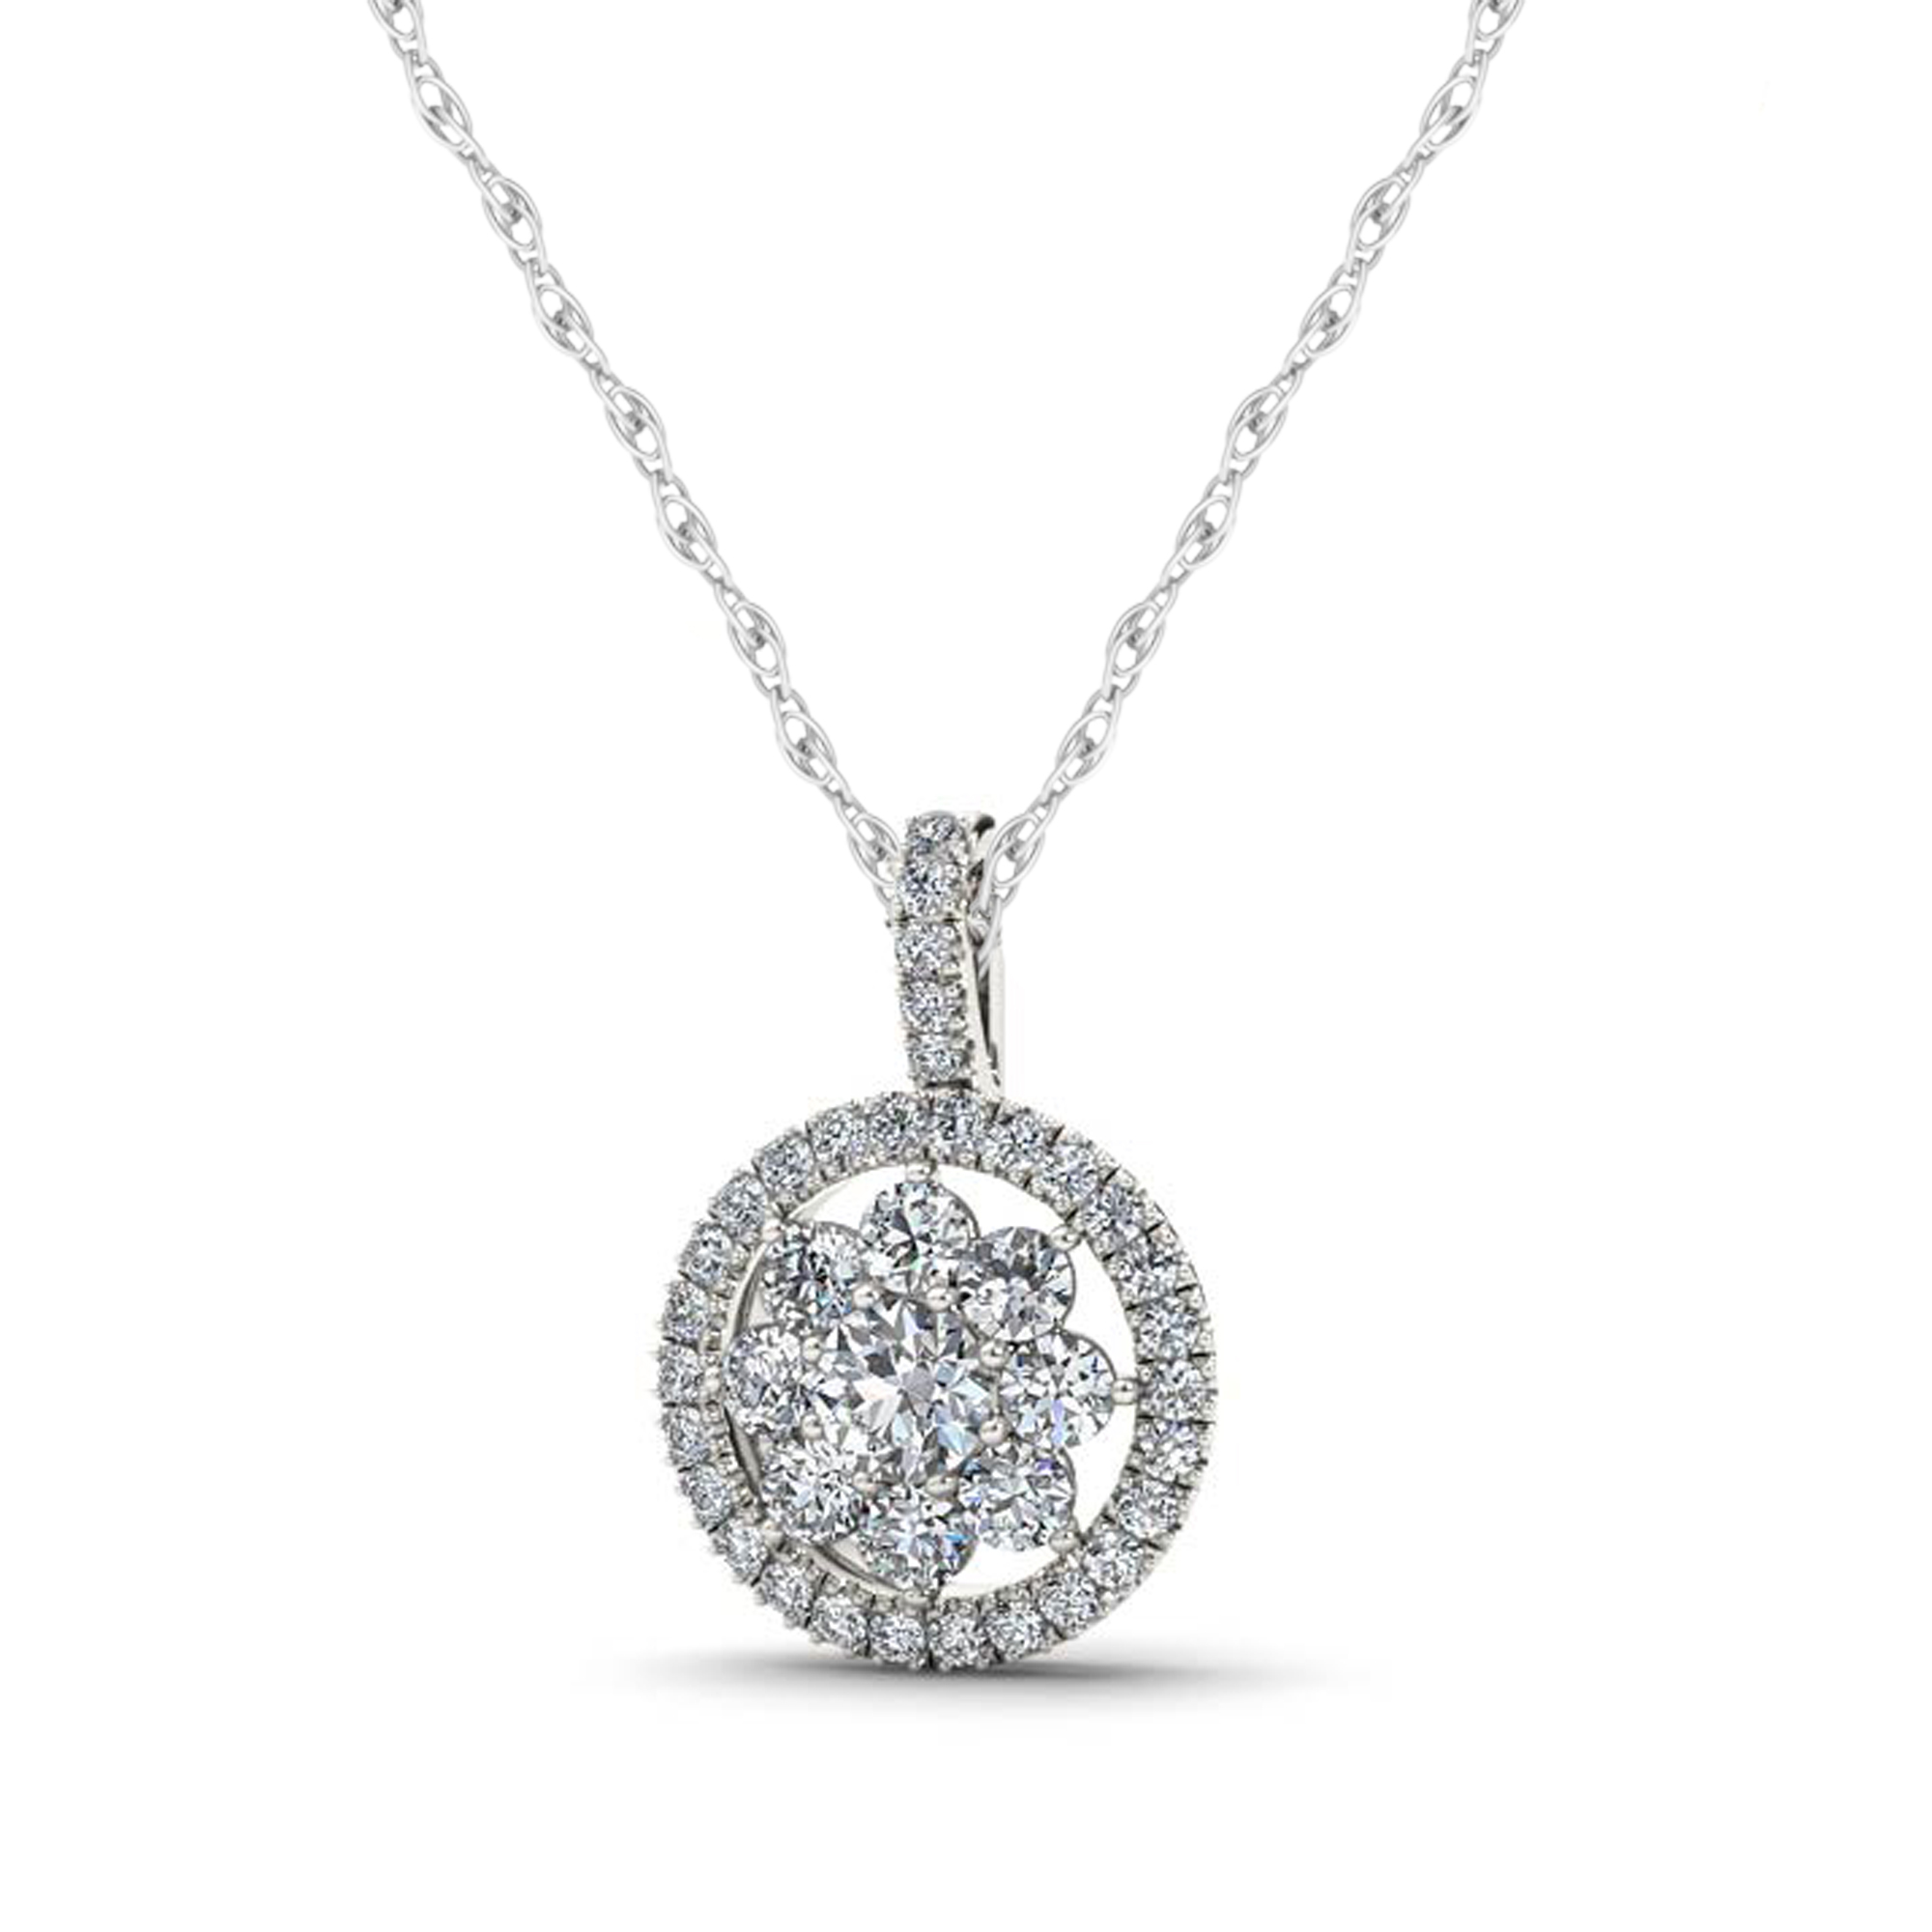 Imperial 3 8ct TW Diamond 10k White Gold Flower Halo Necklace by Imperial Jewels